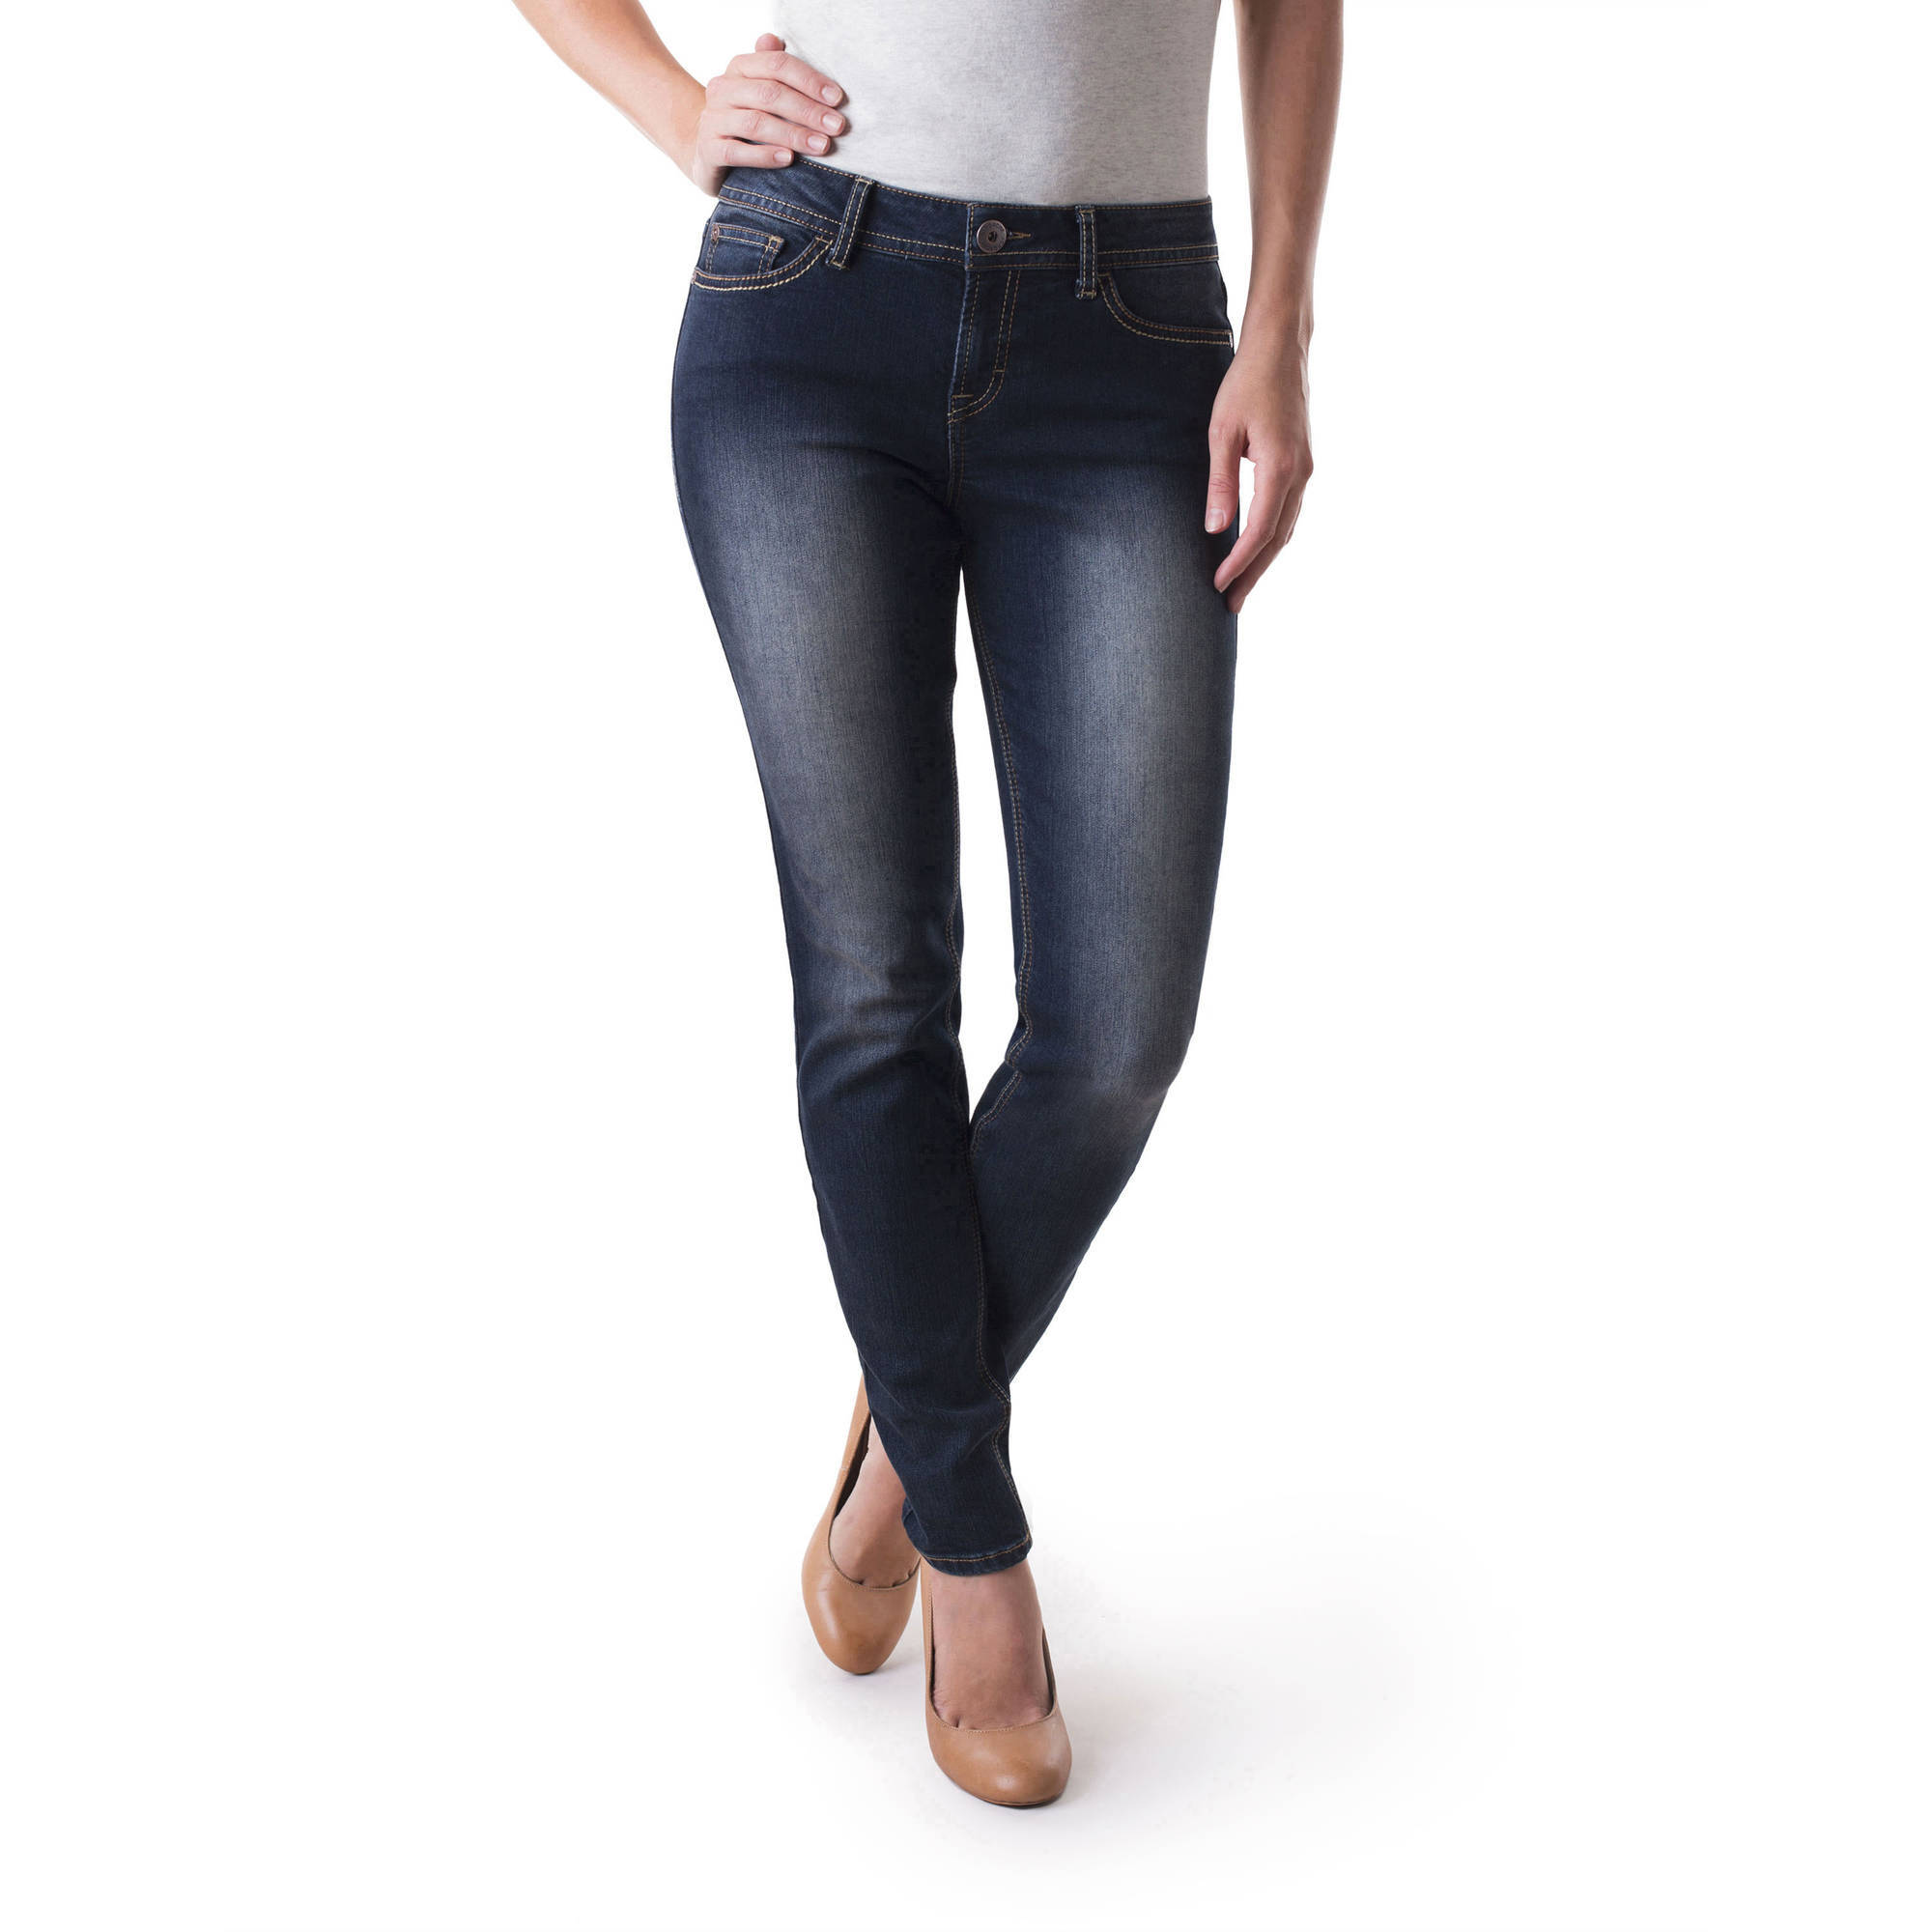 Jordache Women's Skinny Jeans Available in Regular and Petite